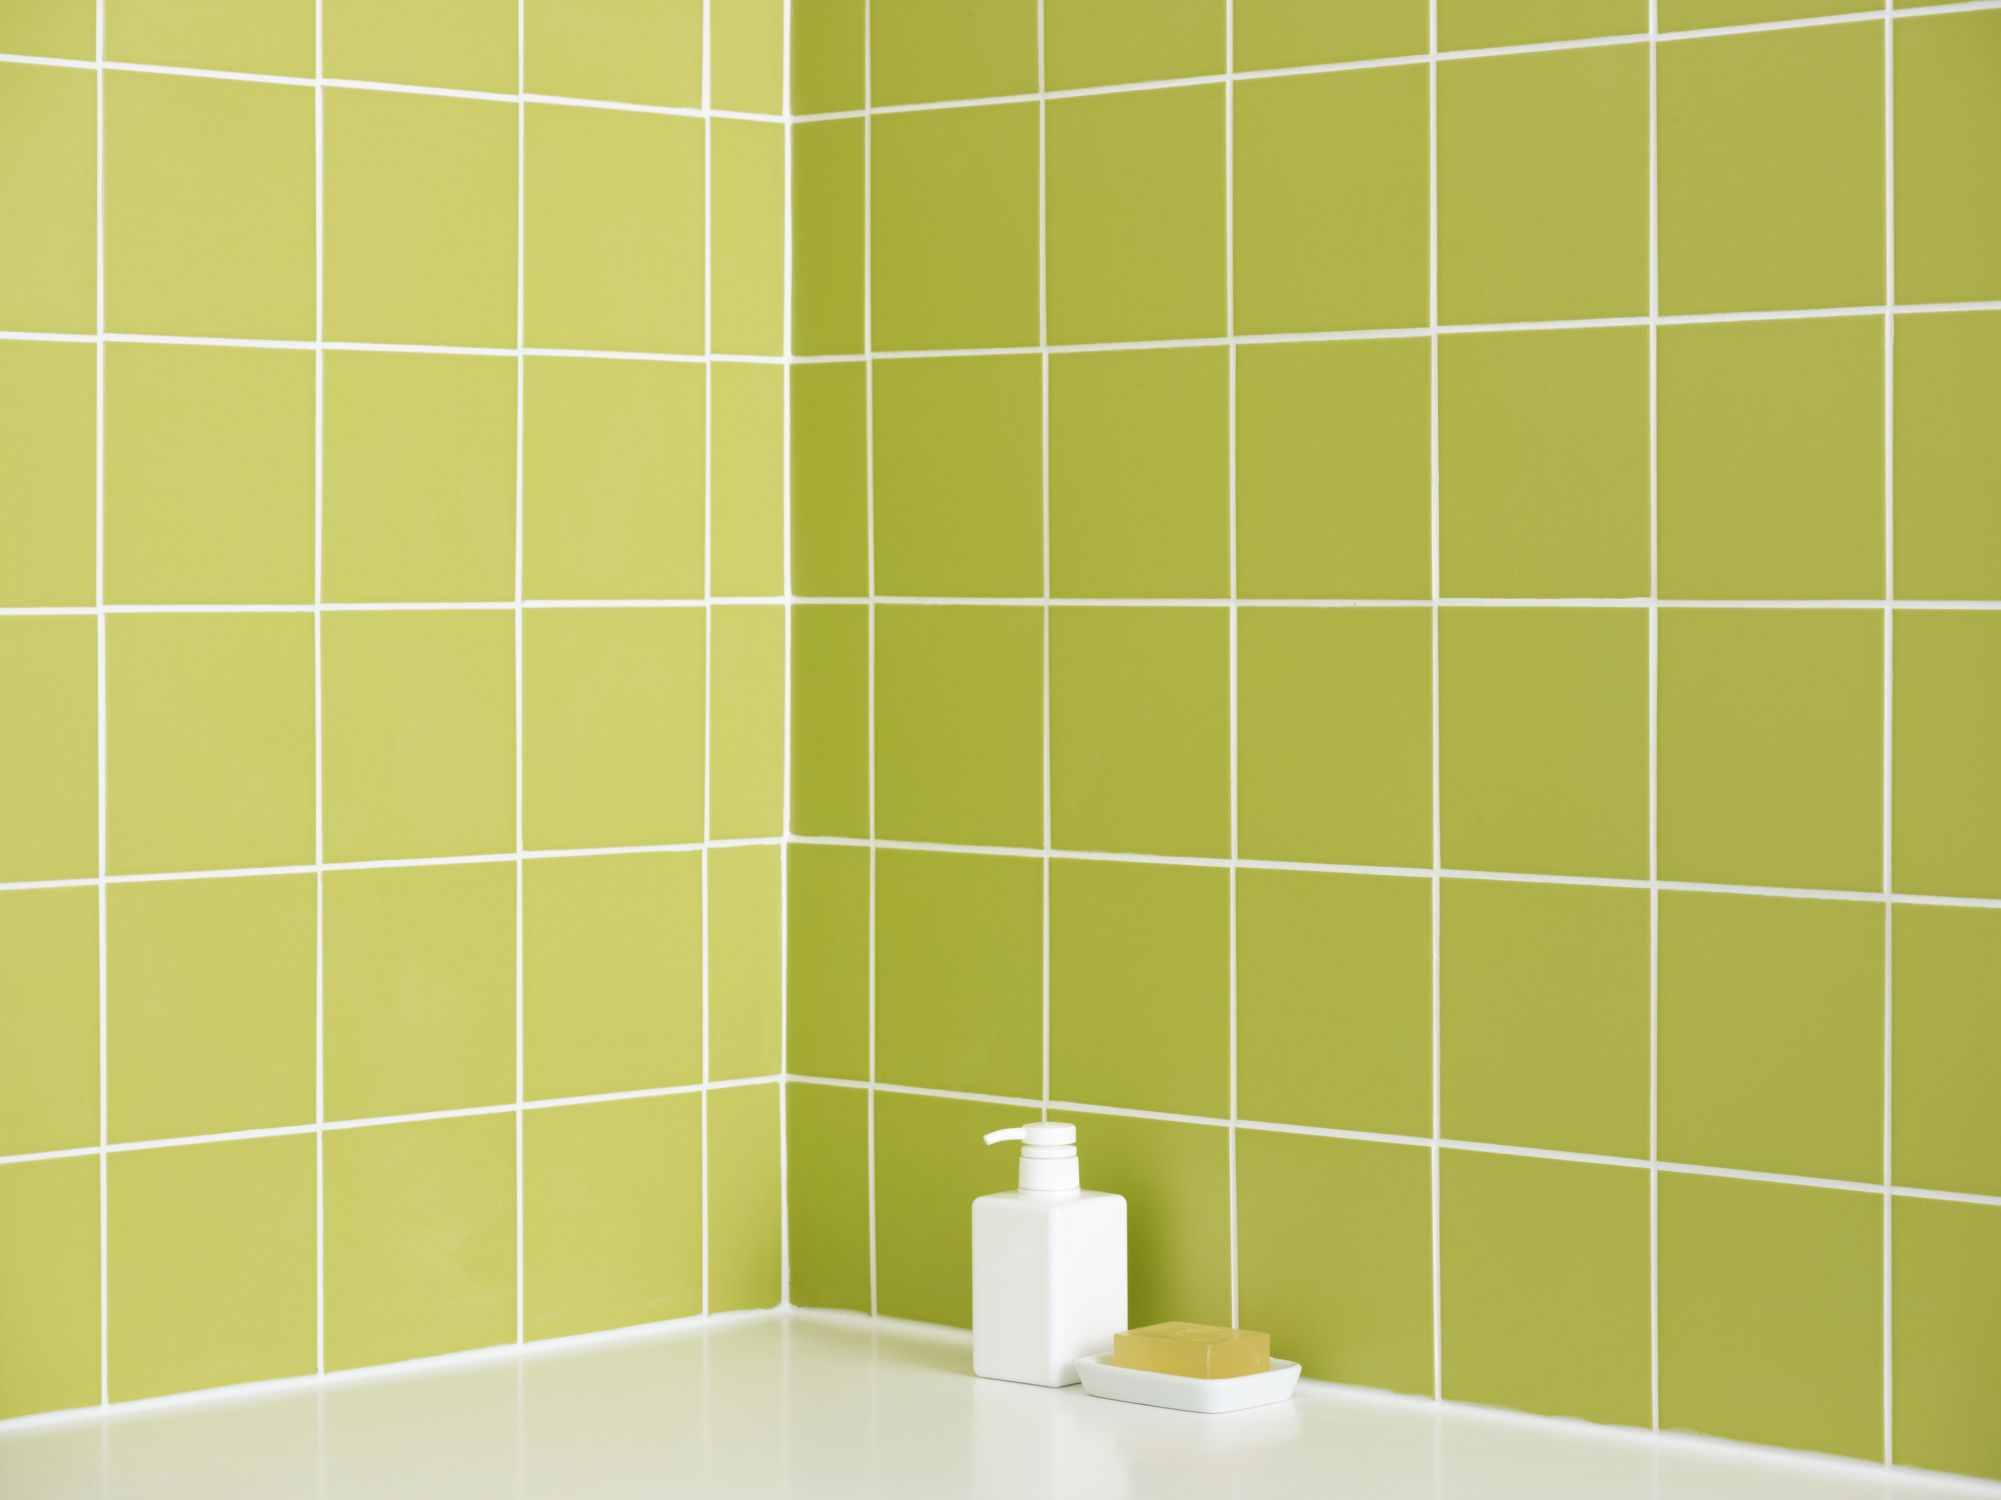 Bring green color to your bathroom with tiles dailygadgetfo Image collections